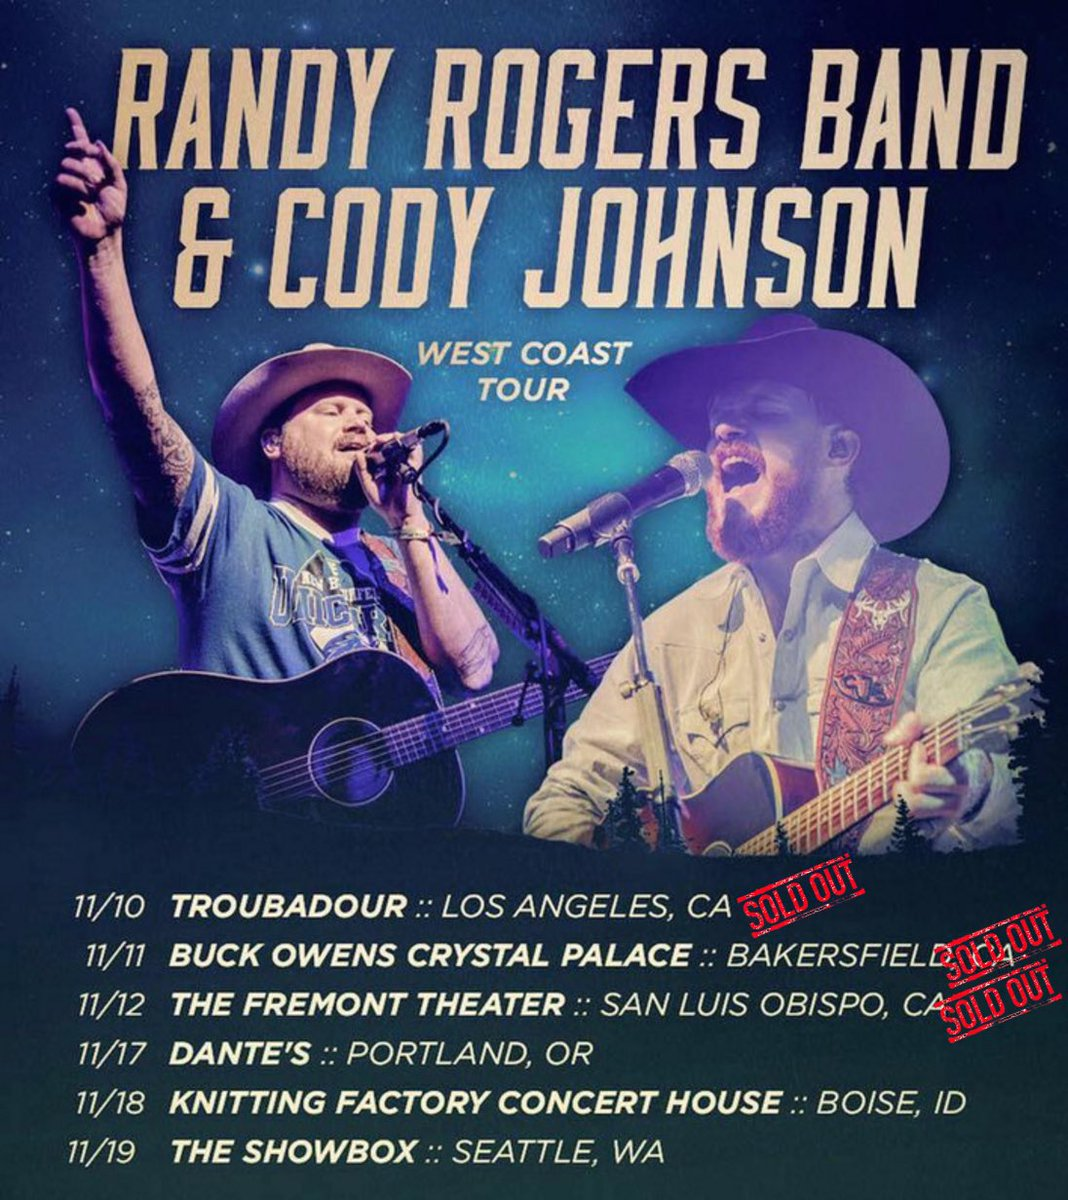 Hitting The West Coast With The Randy Rogers Band!